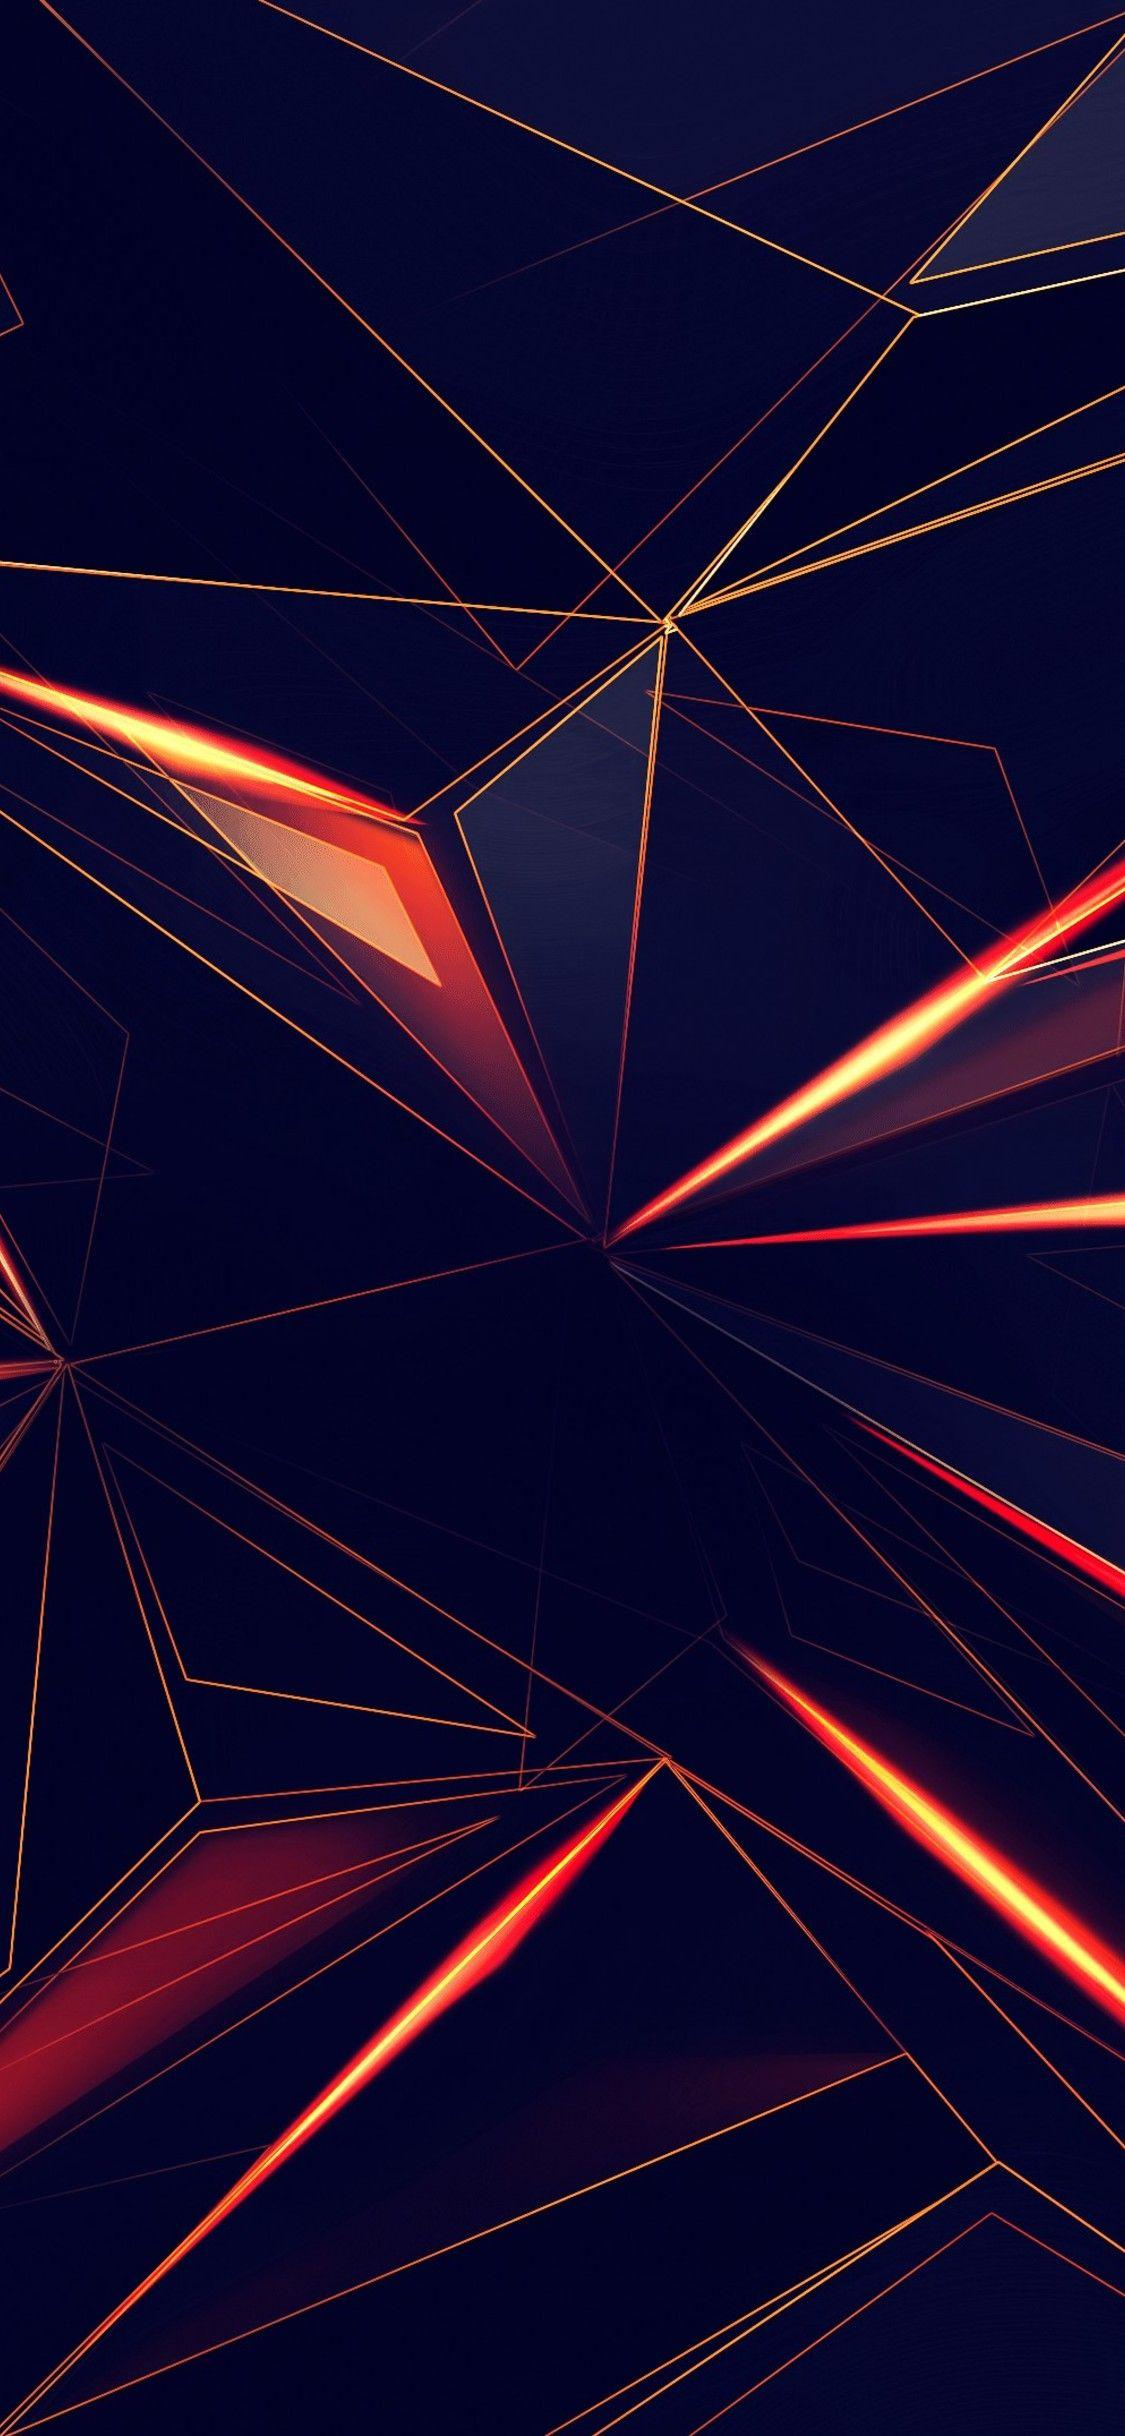 3d Shapes Abstract Lines 4k In 1125x2436 Resolution